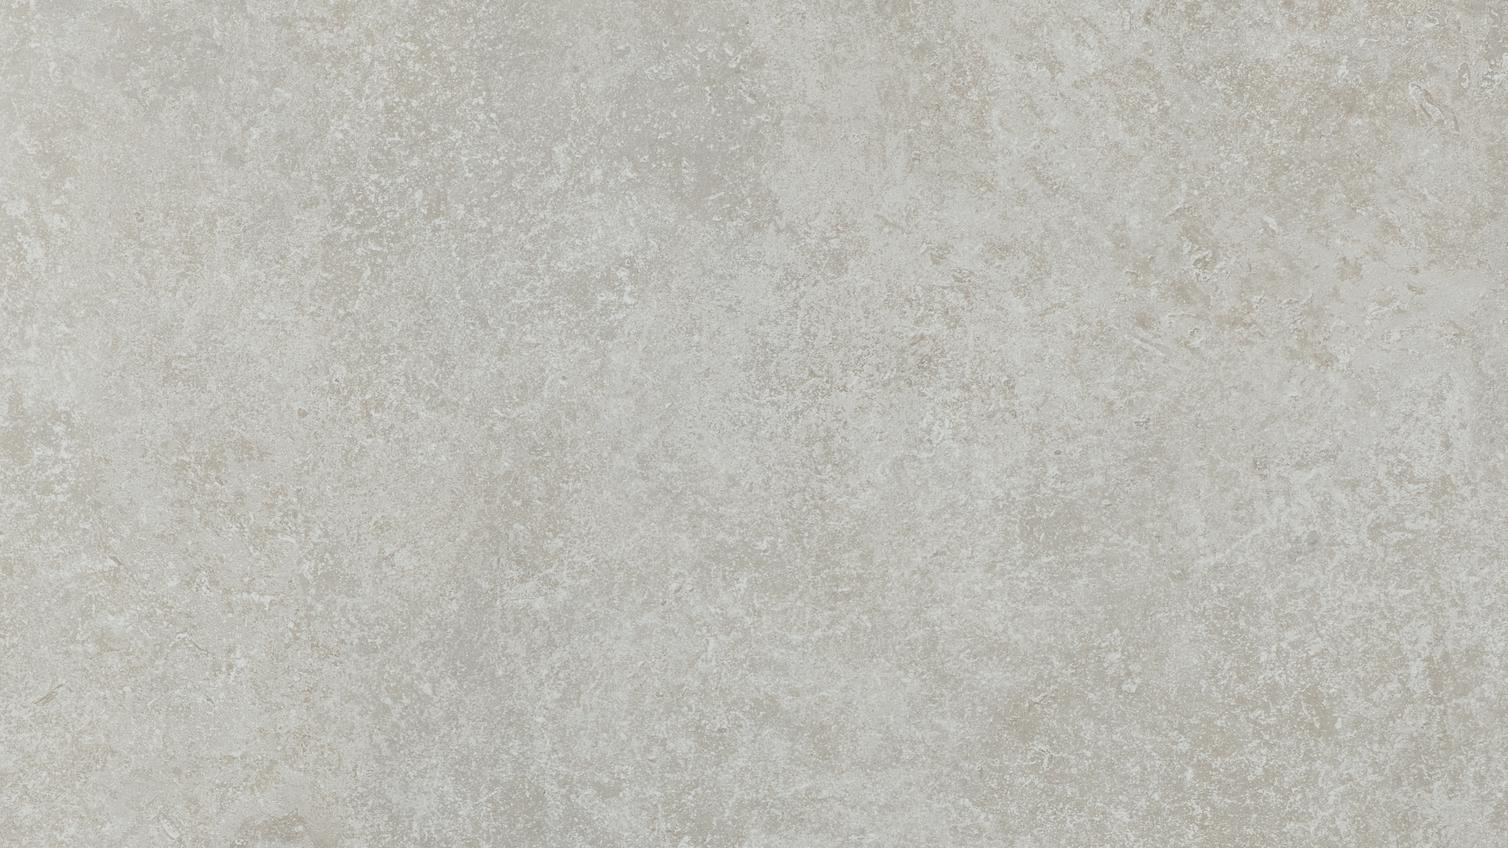 Howdens 3m x 600mm Matt Cream Stone Effect Laminate